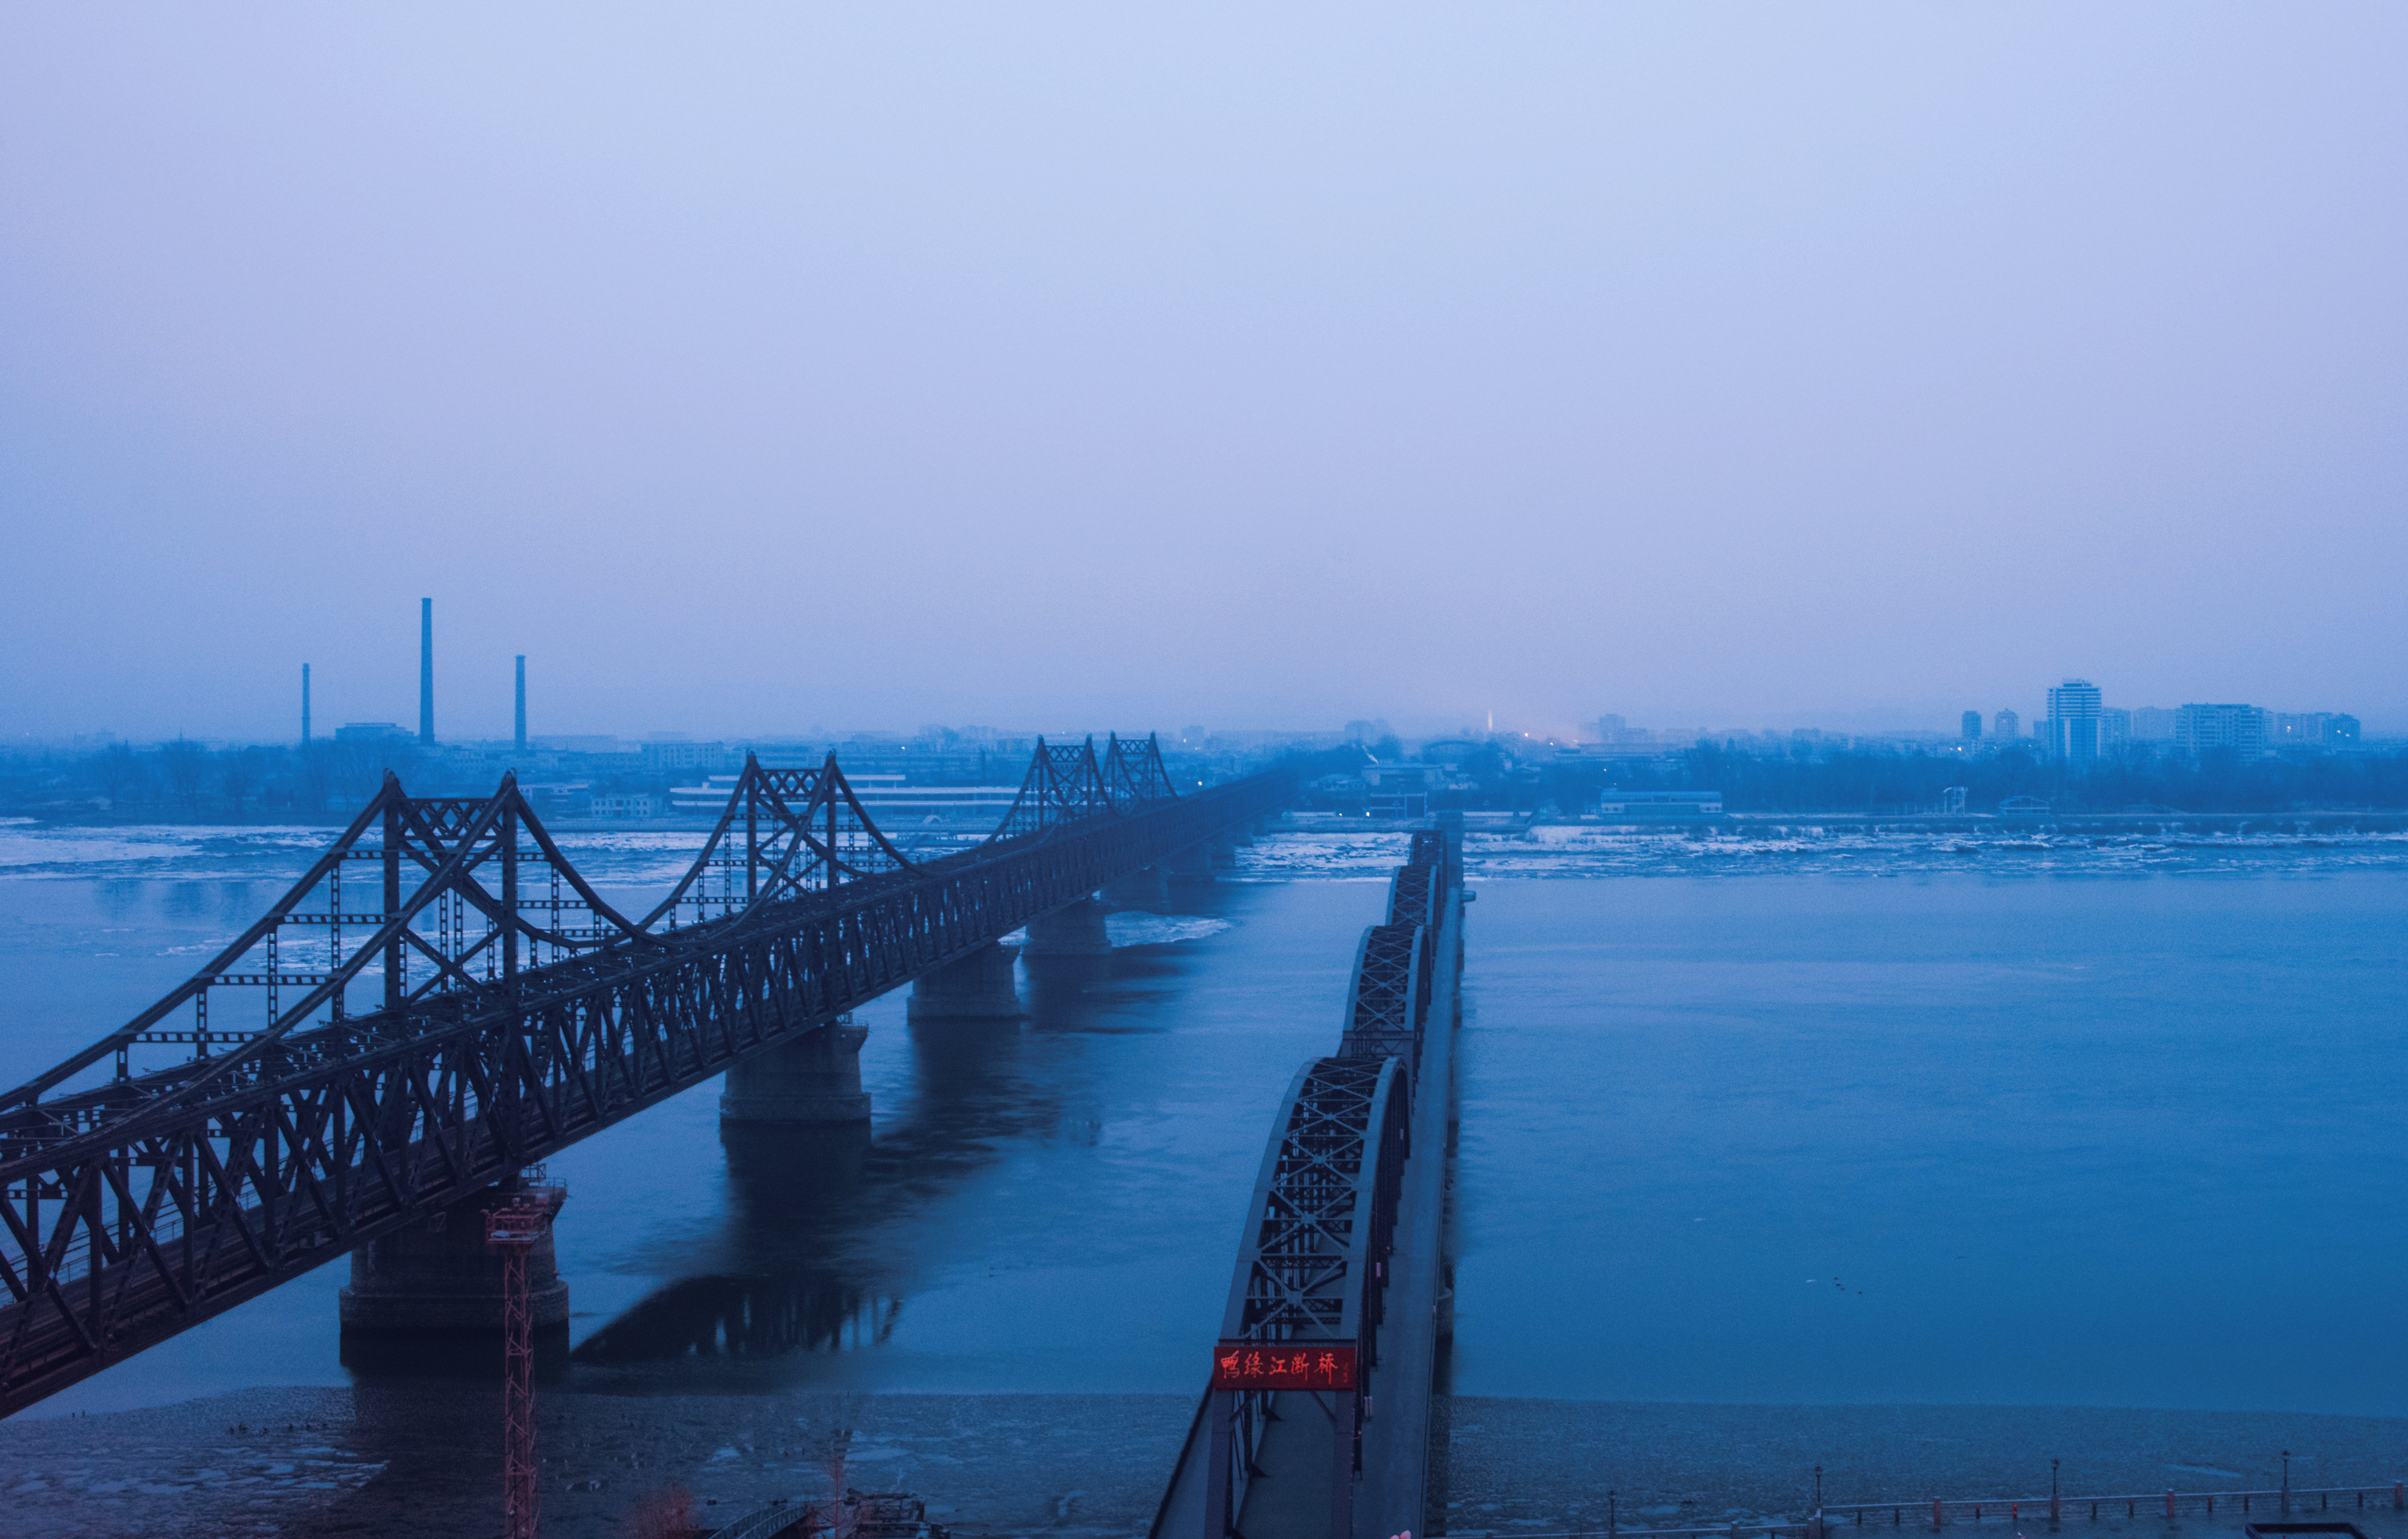 Fog is seen on the banks of the Yalu River in the Chinese border town of Dandong, opposite to the North Korean town of Sinuiju, on February 8, 2016. The UN Security Council strongly condemned North Korea's rocket launch on February 7 and agreed to move quickly to impose new sanctions that will punish Pyongyang for  these dangerous and serious violations.